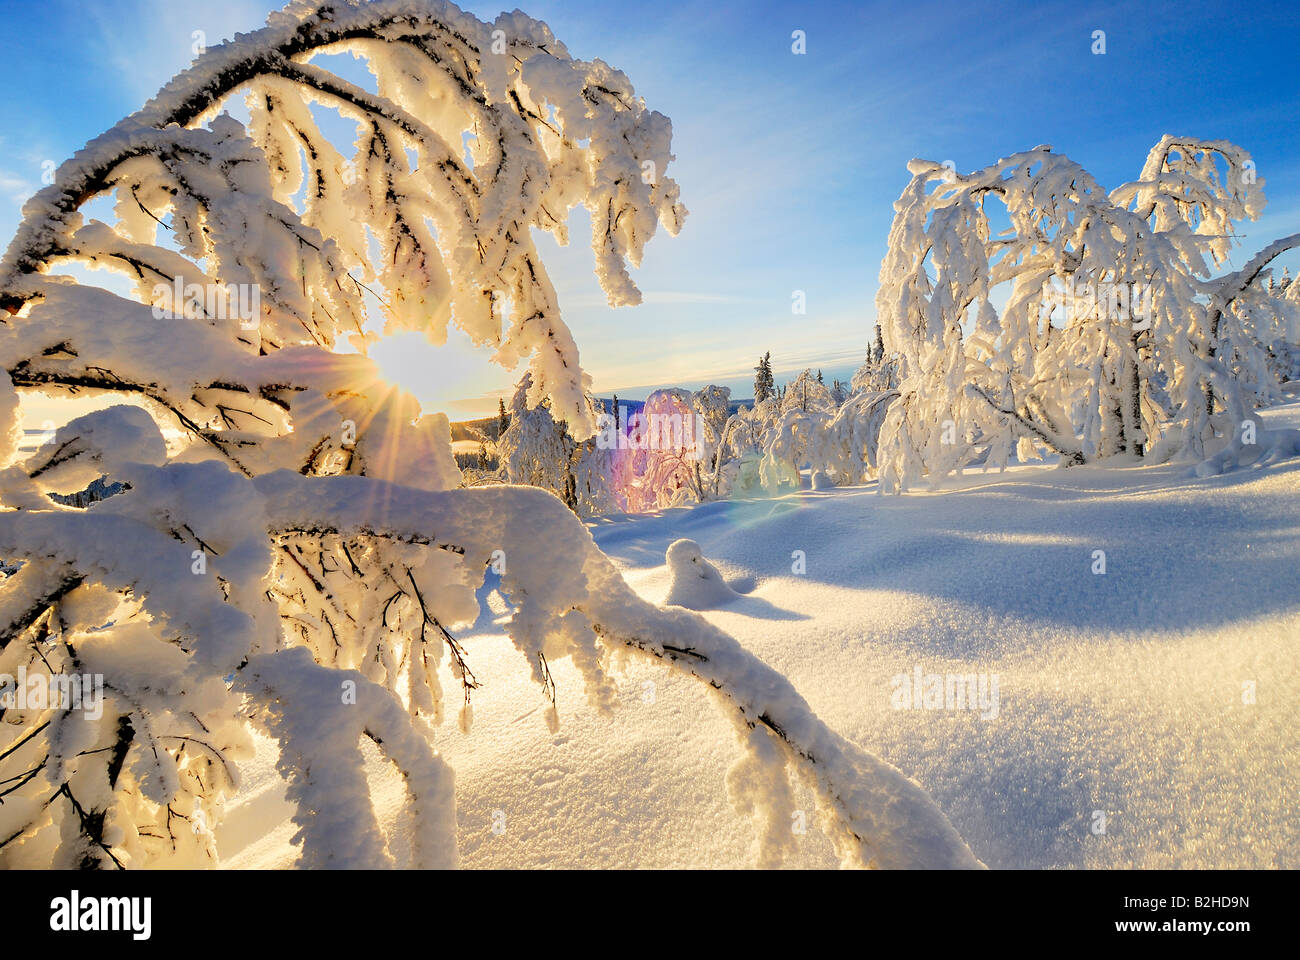 birches wintry landscape scenery snow covered stubba nature reservatoin Laponia lapland norrbotten sweden scandinavia - Stock Image